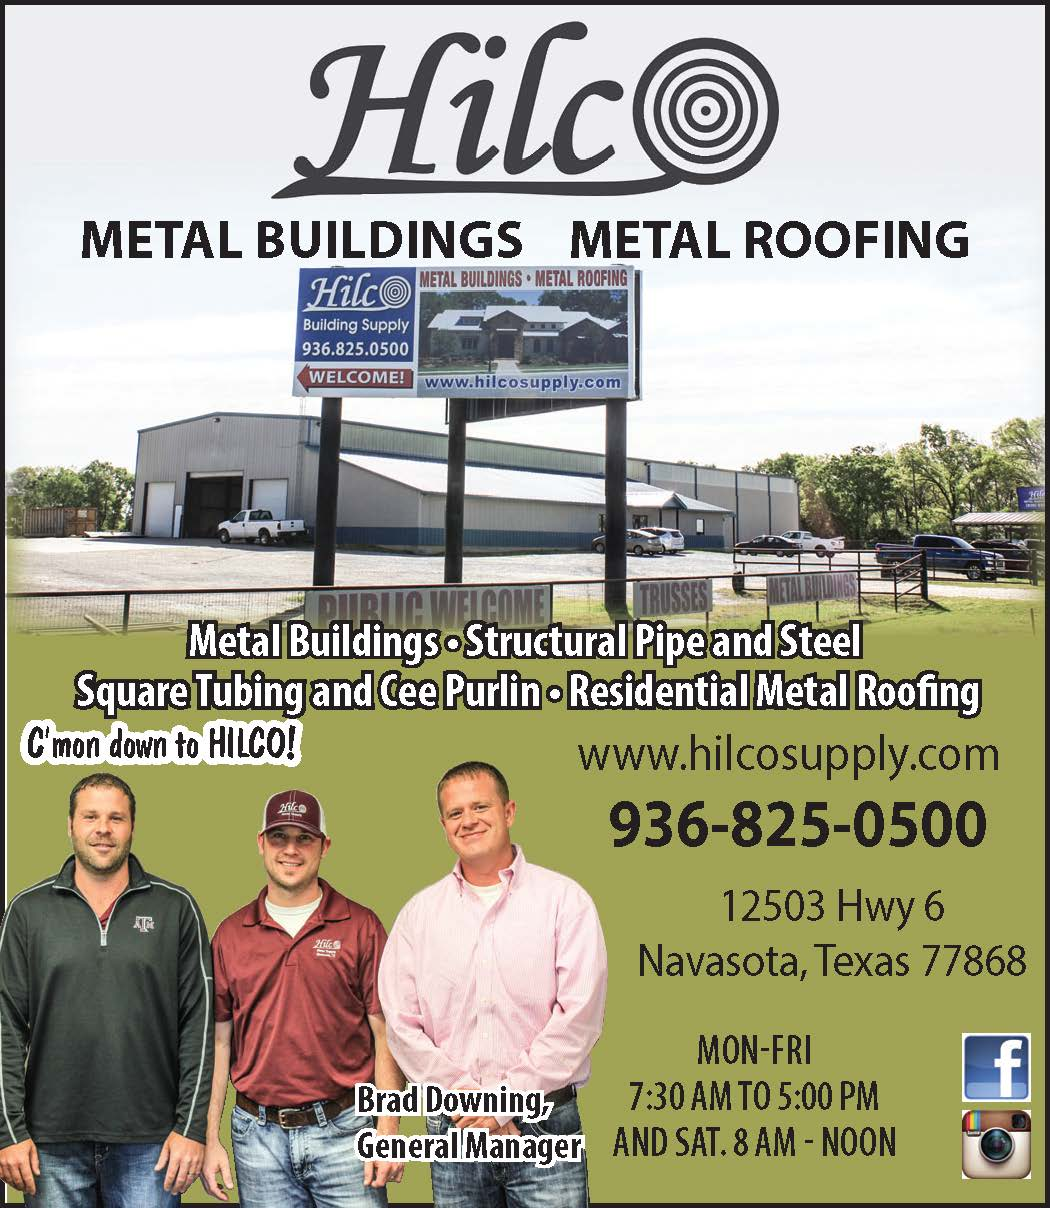 Hilco Navasota Business Guide Flyer